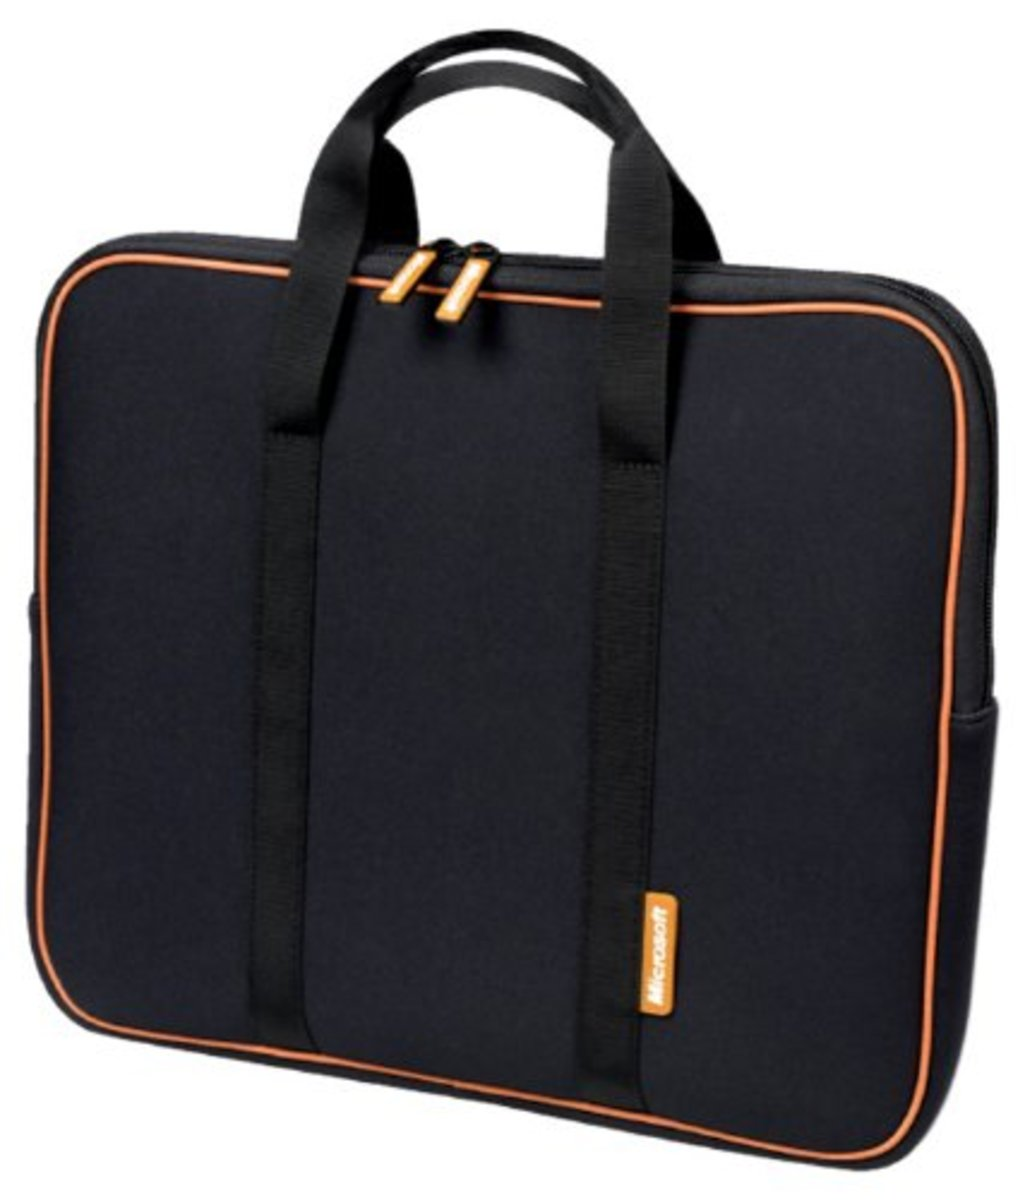 Microsoft 17.3-Inch Neoprene Laptop Sleeve